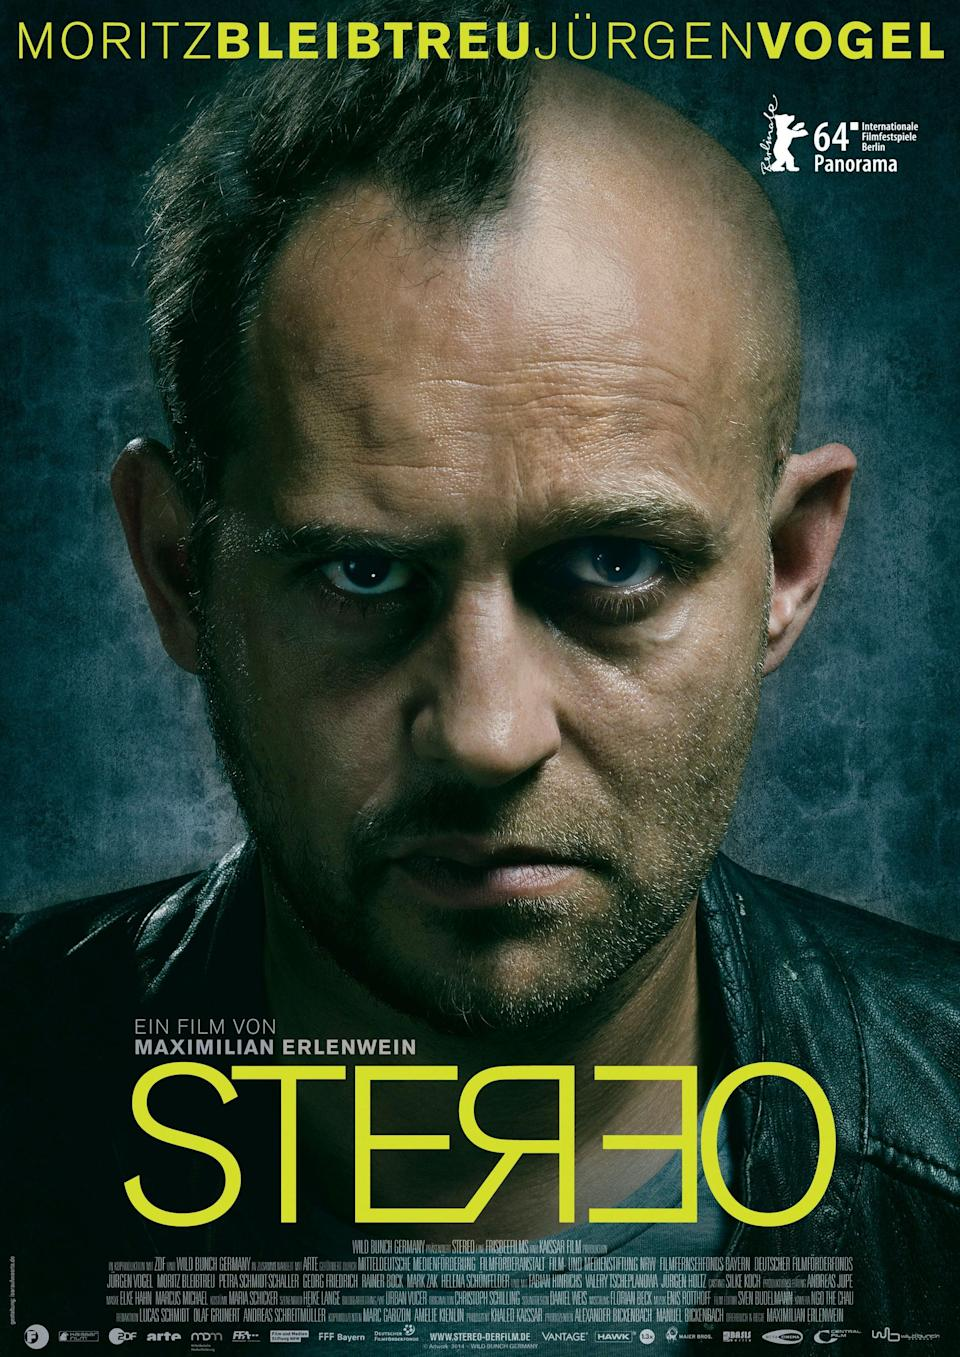 """<p>Erik enjoys his peaceful rural life, which involves owning a motorcycle shop in the countryside. But his calm and comfortable lifestyle comes to a halt when a mysterious stranger who claims to know him comes to town. </p> <p> <a href=""""http://www.netflix.com/search?q=stereo&amp;jbv=80015154"""" class=""""link rapid-noclick-resp"""" rel=""""nofollow noopener"""" target=""""_blank"""" data-ylk=""""slk:Watch Stereo on Netflix now."""">Watch <strong>Stereo</strong> on Netflix now.</a> </p>"""